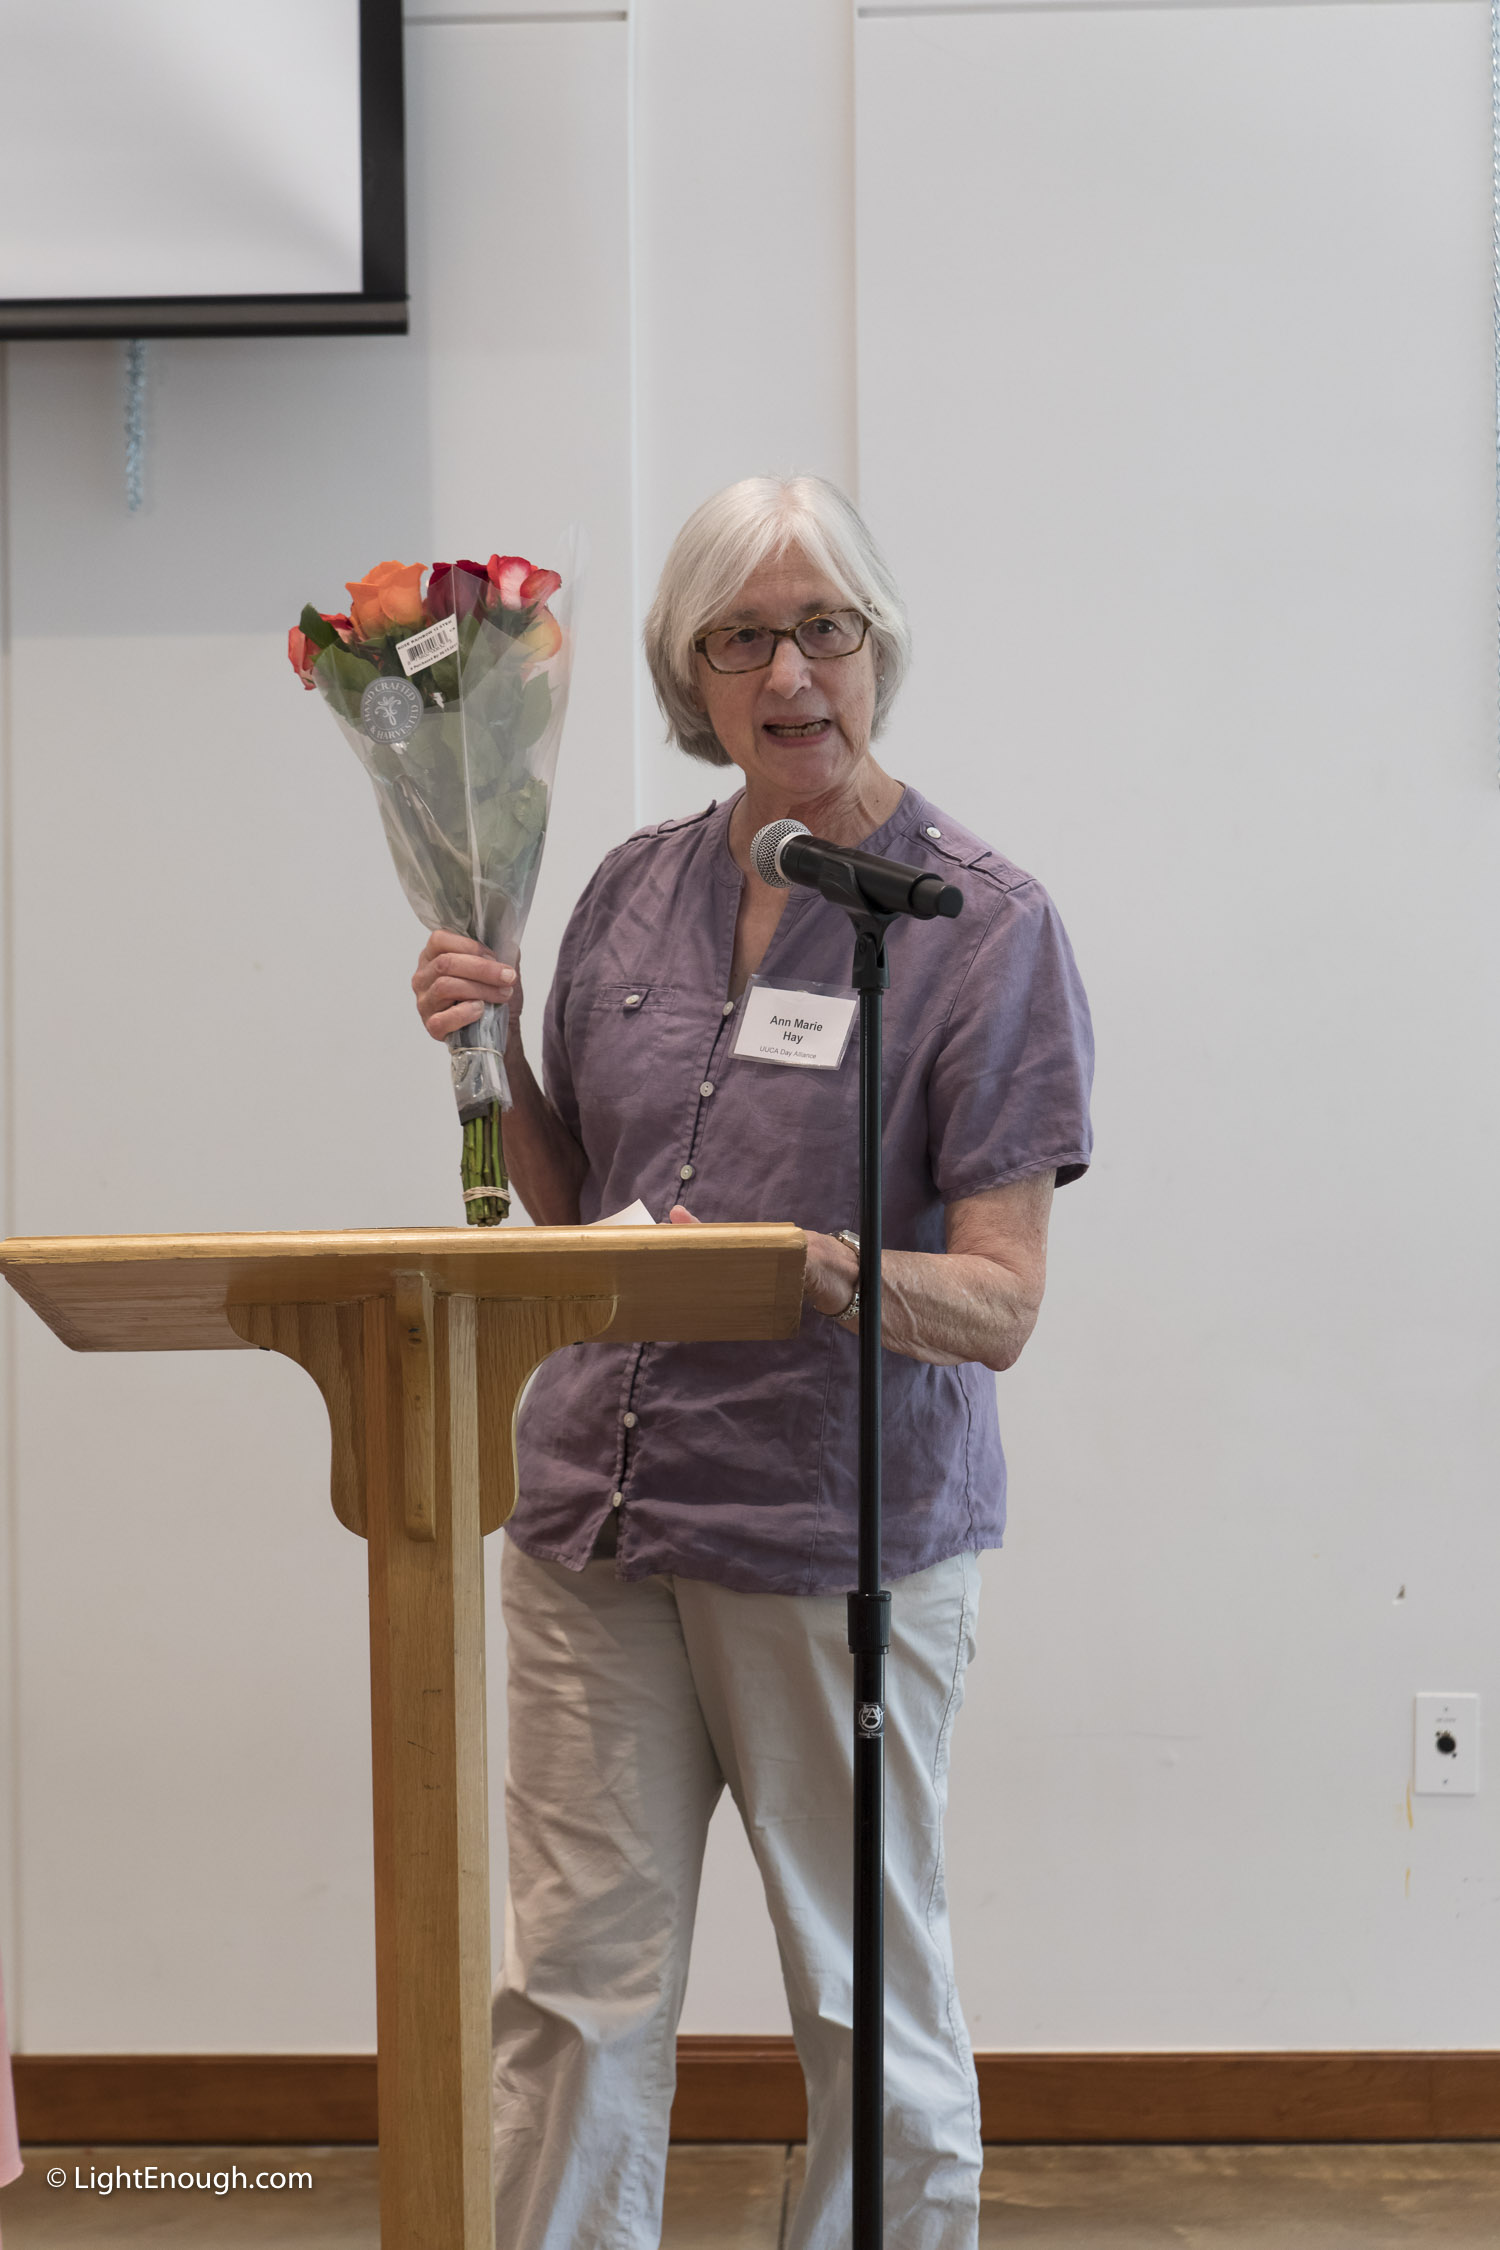 Ann Marie Hay at the June 2017 meeting of the UUCA Day Alliance. Allen Kiesweter speaker. Photos by John St Hilaire/LightEnough.com